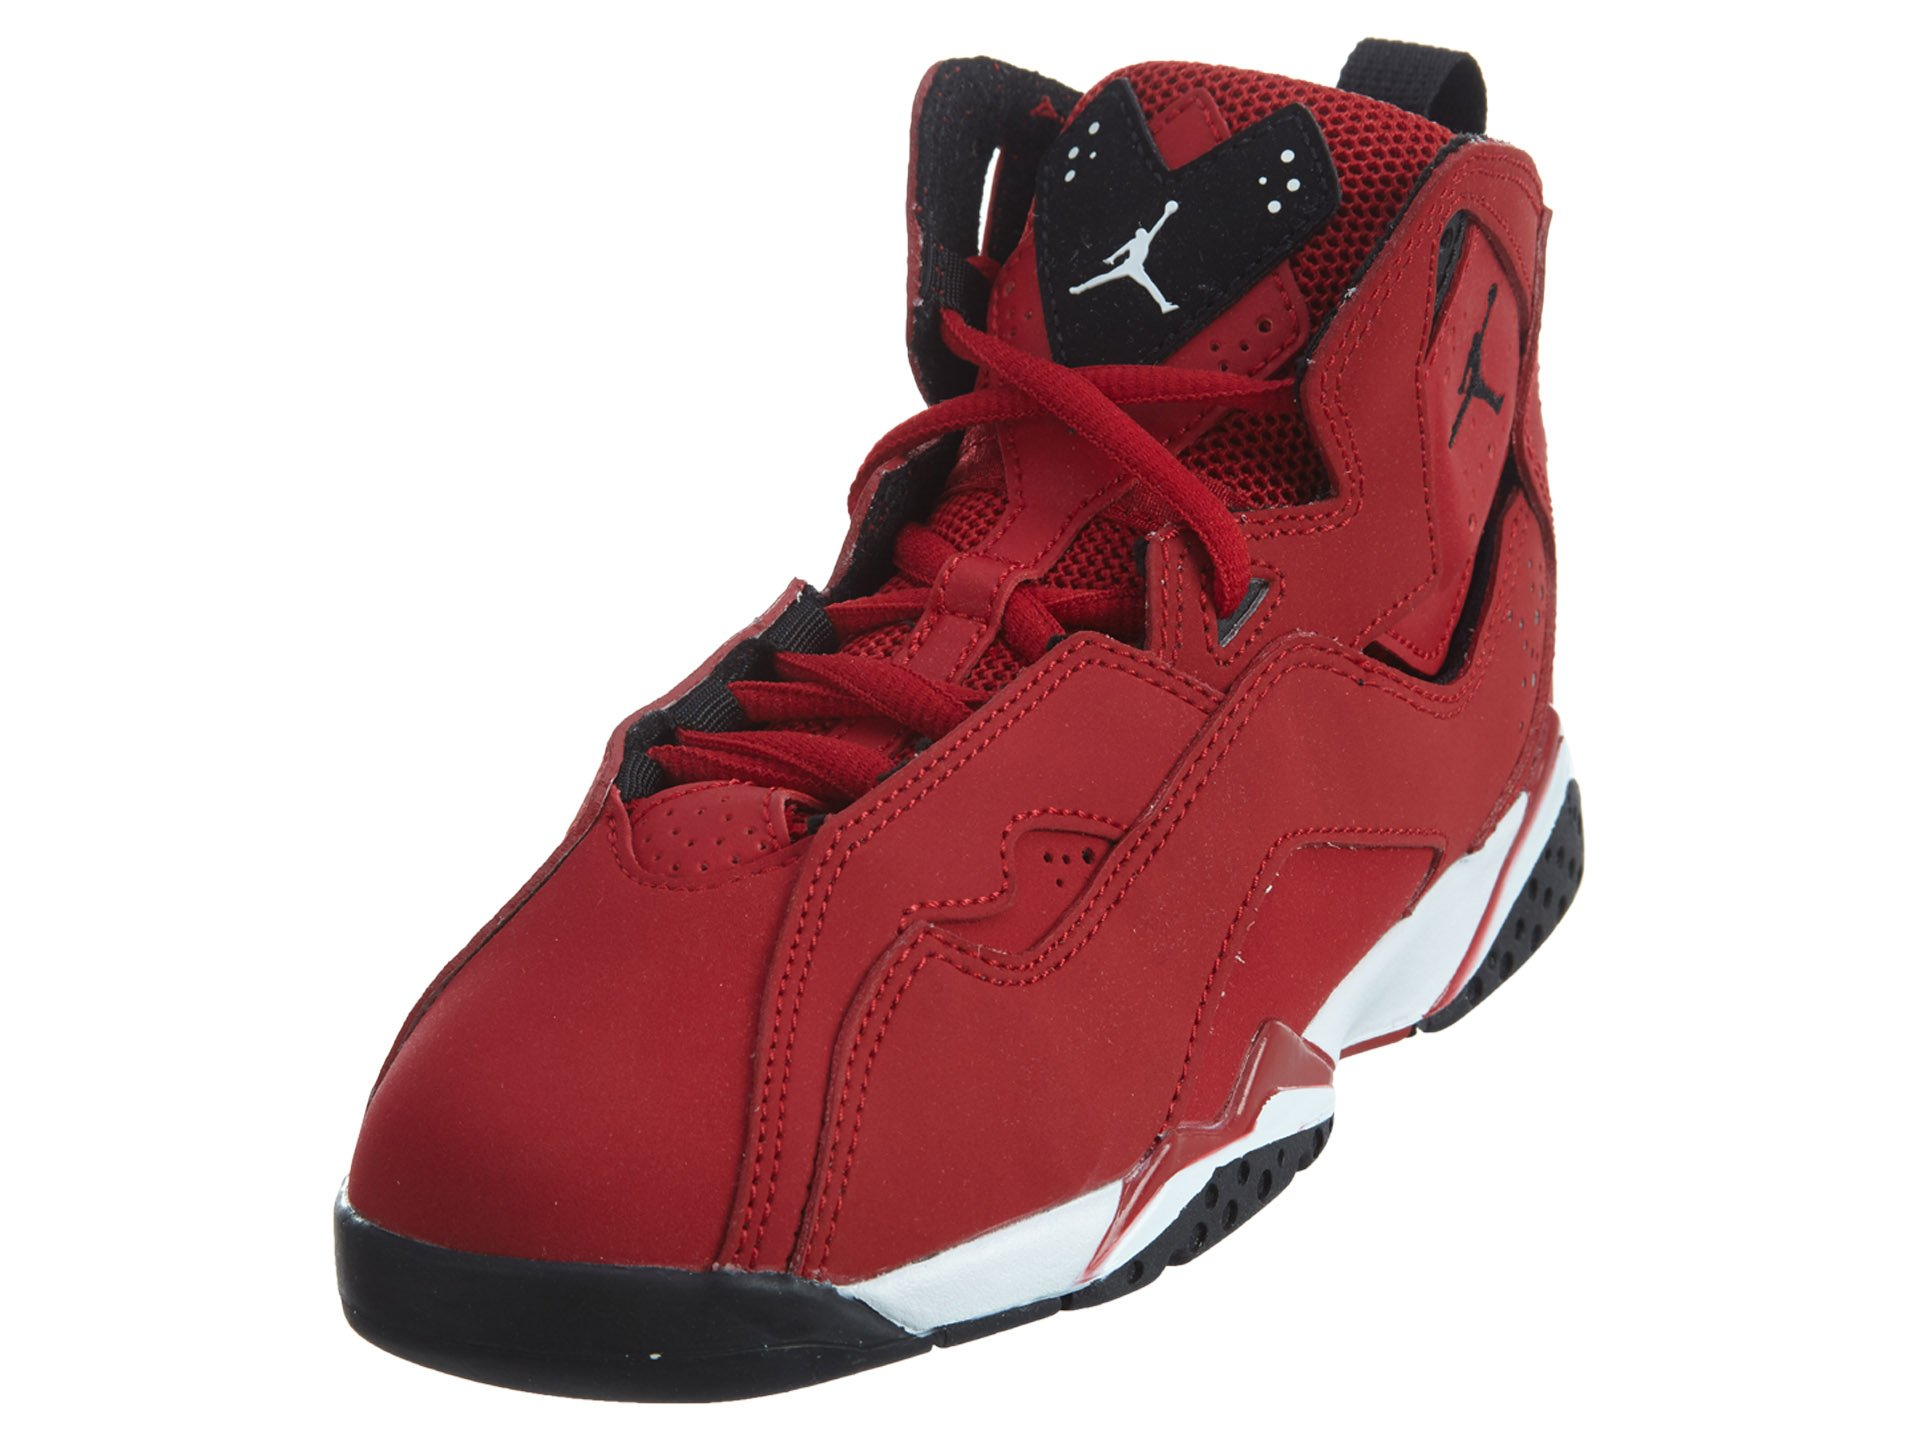 Jordan True Flight Little Kids Style: 343796-610 Size: 13 Y US by Jordan